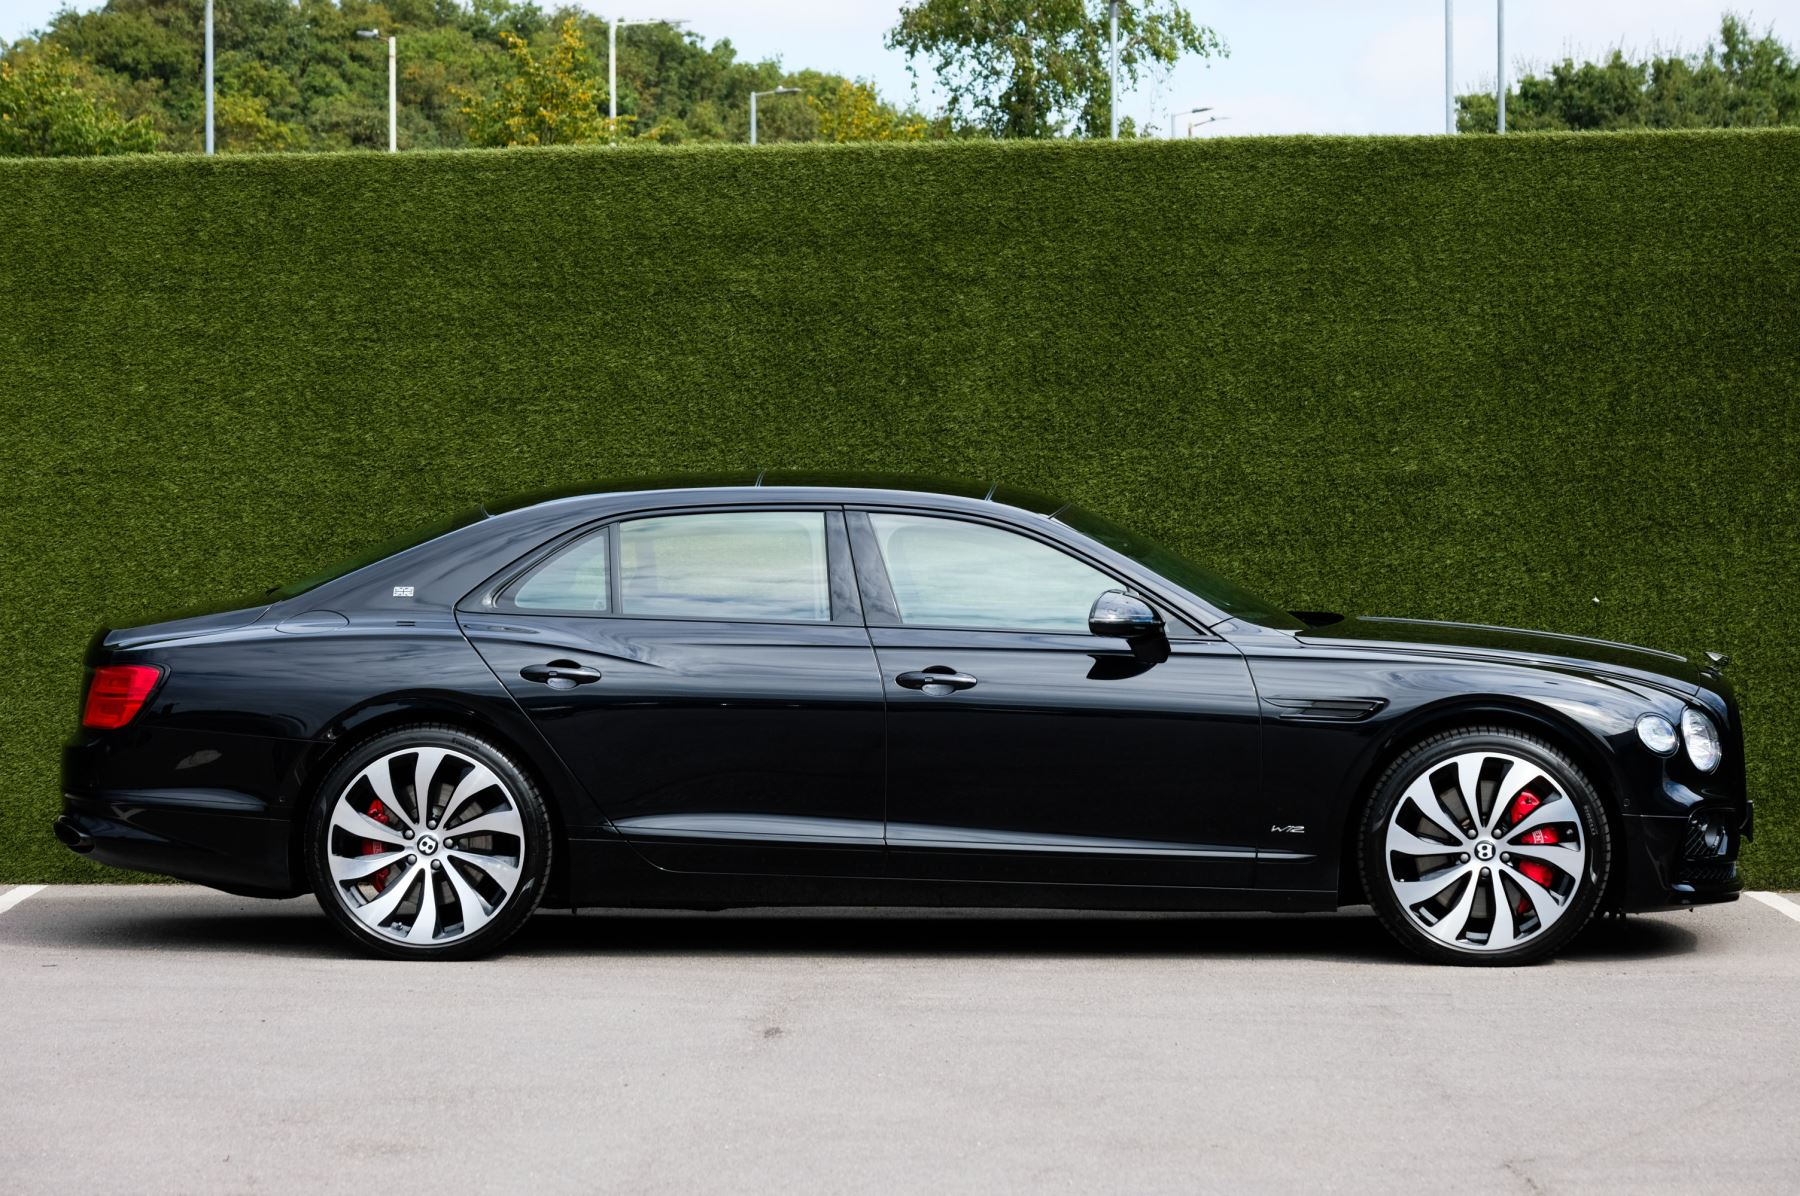 Bentley Flying Spur 6.0 W12 - First Edition - Mulliner Driving Specification image 3